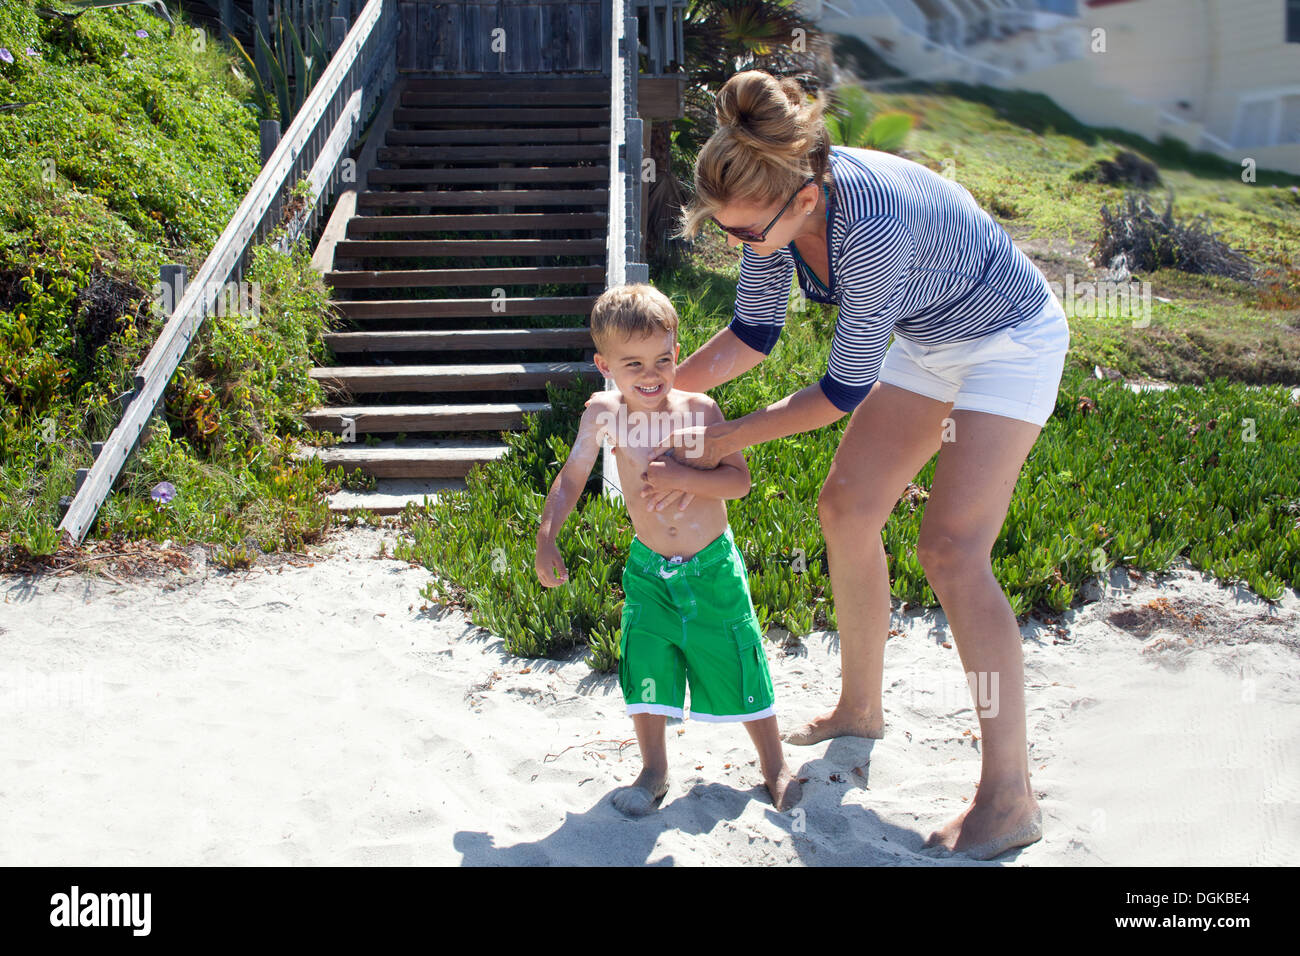 Mother applying sun cream to toddler at beach - Stock Image